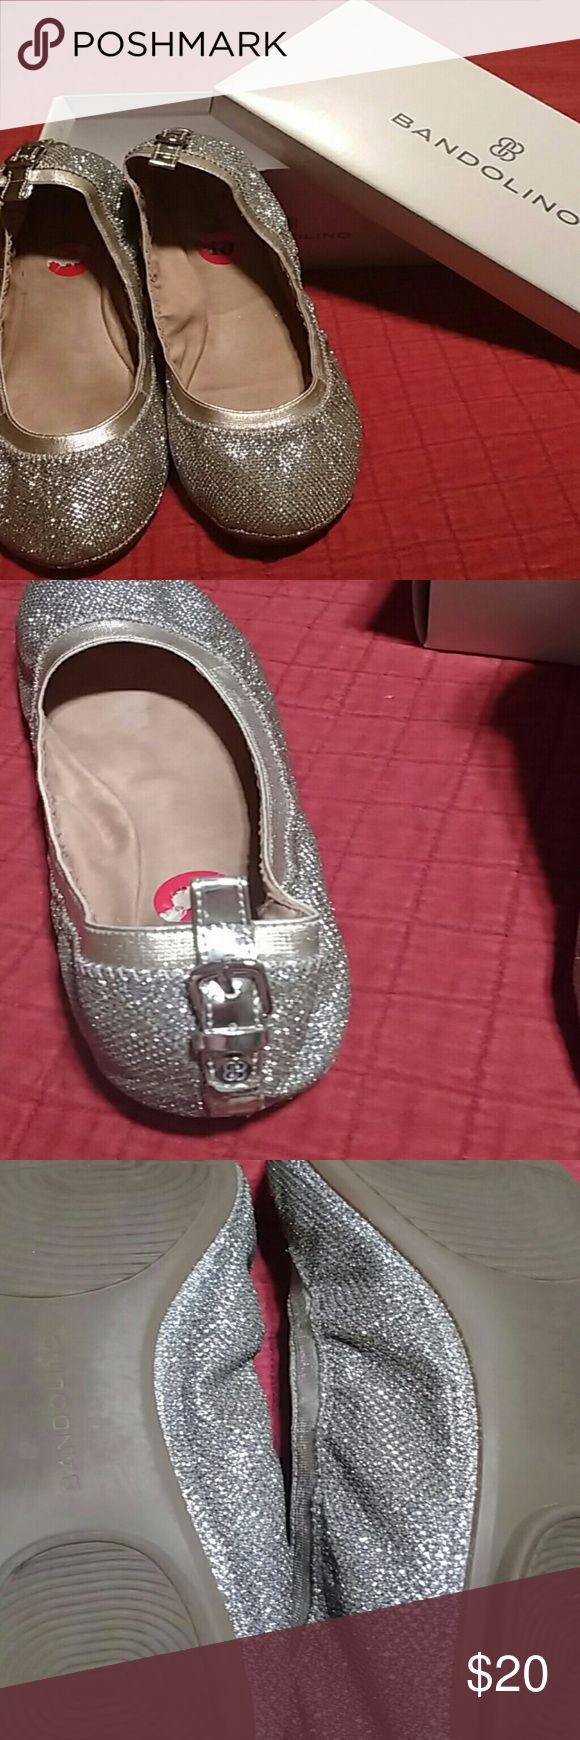 Shoe's Silver ballet flats with gold trim and buckle design on back Bandolino Shoes Flats & Loafers